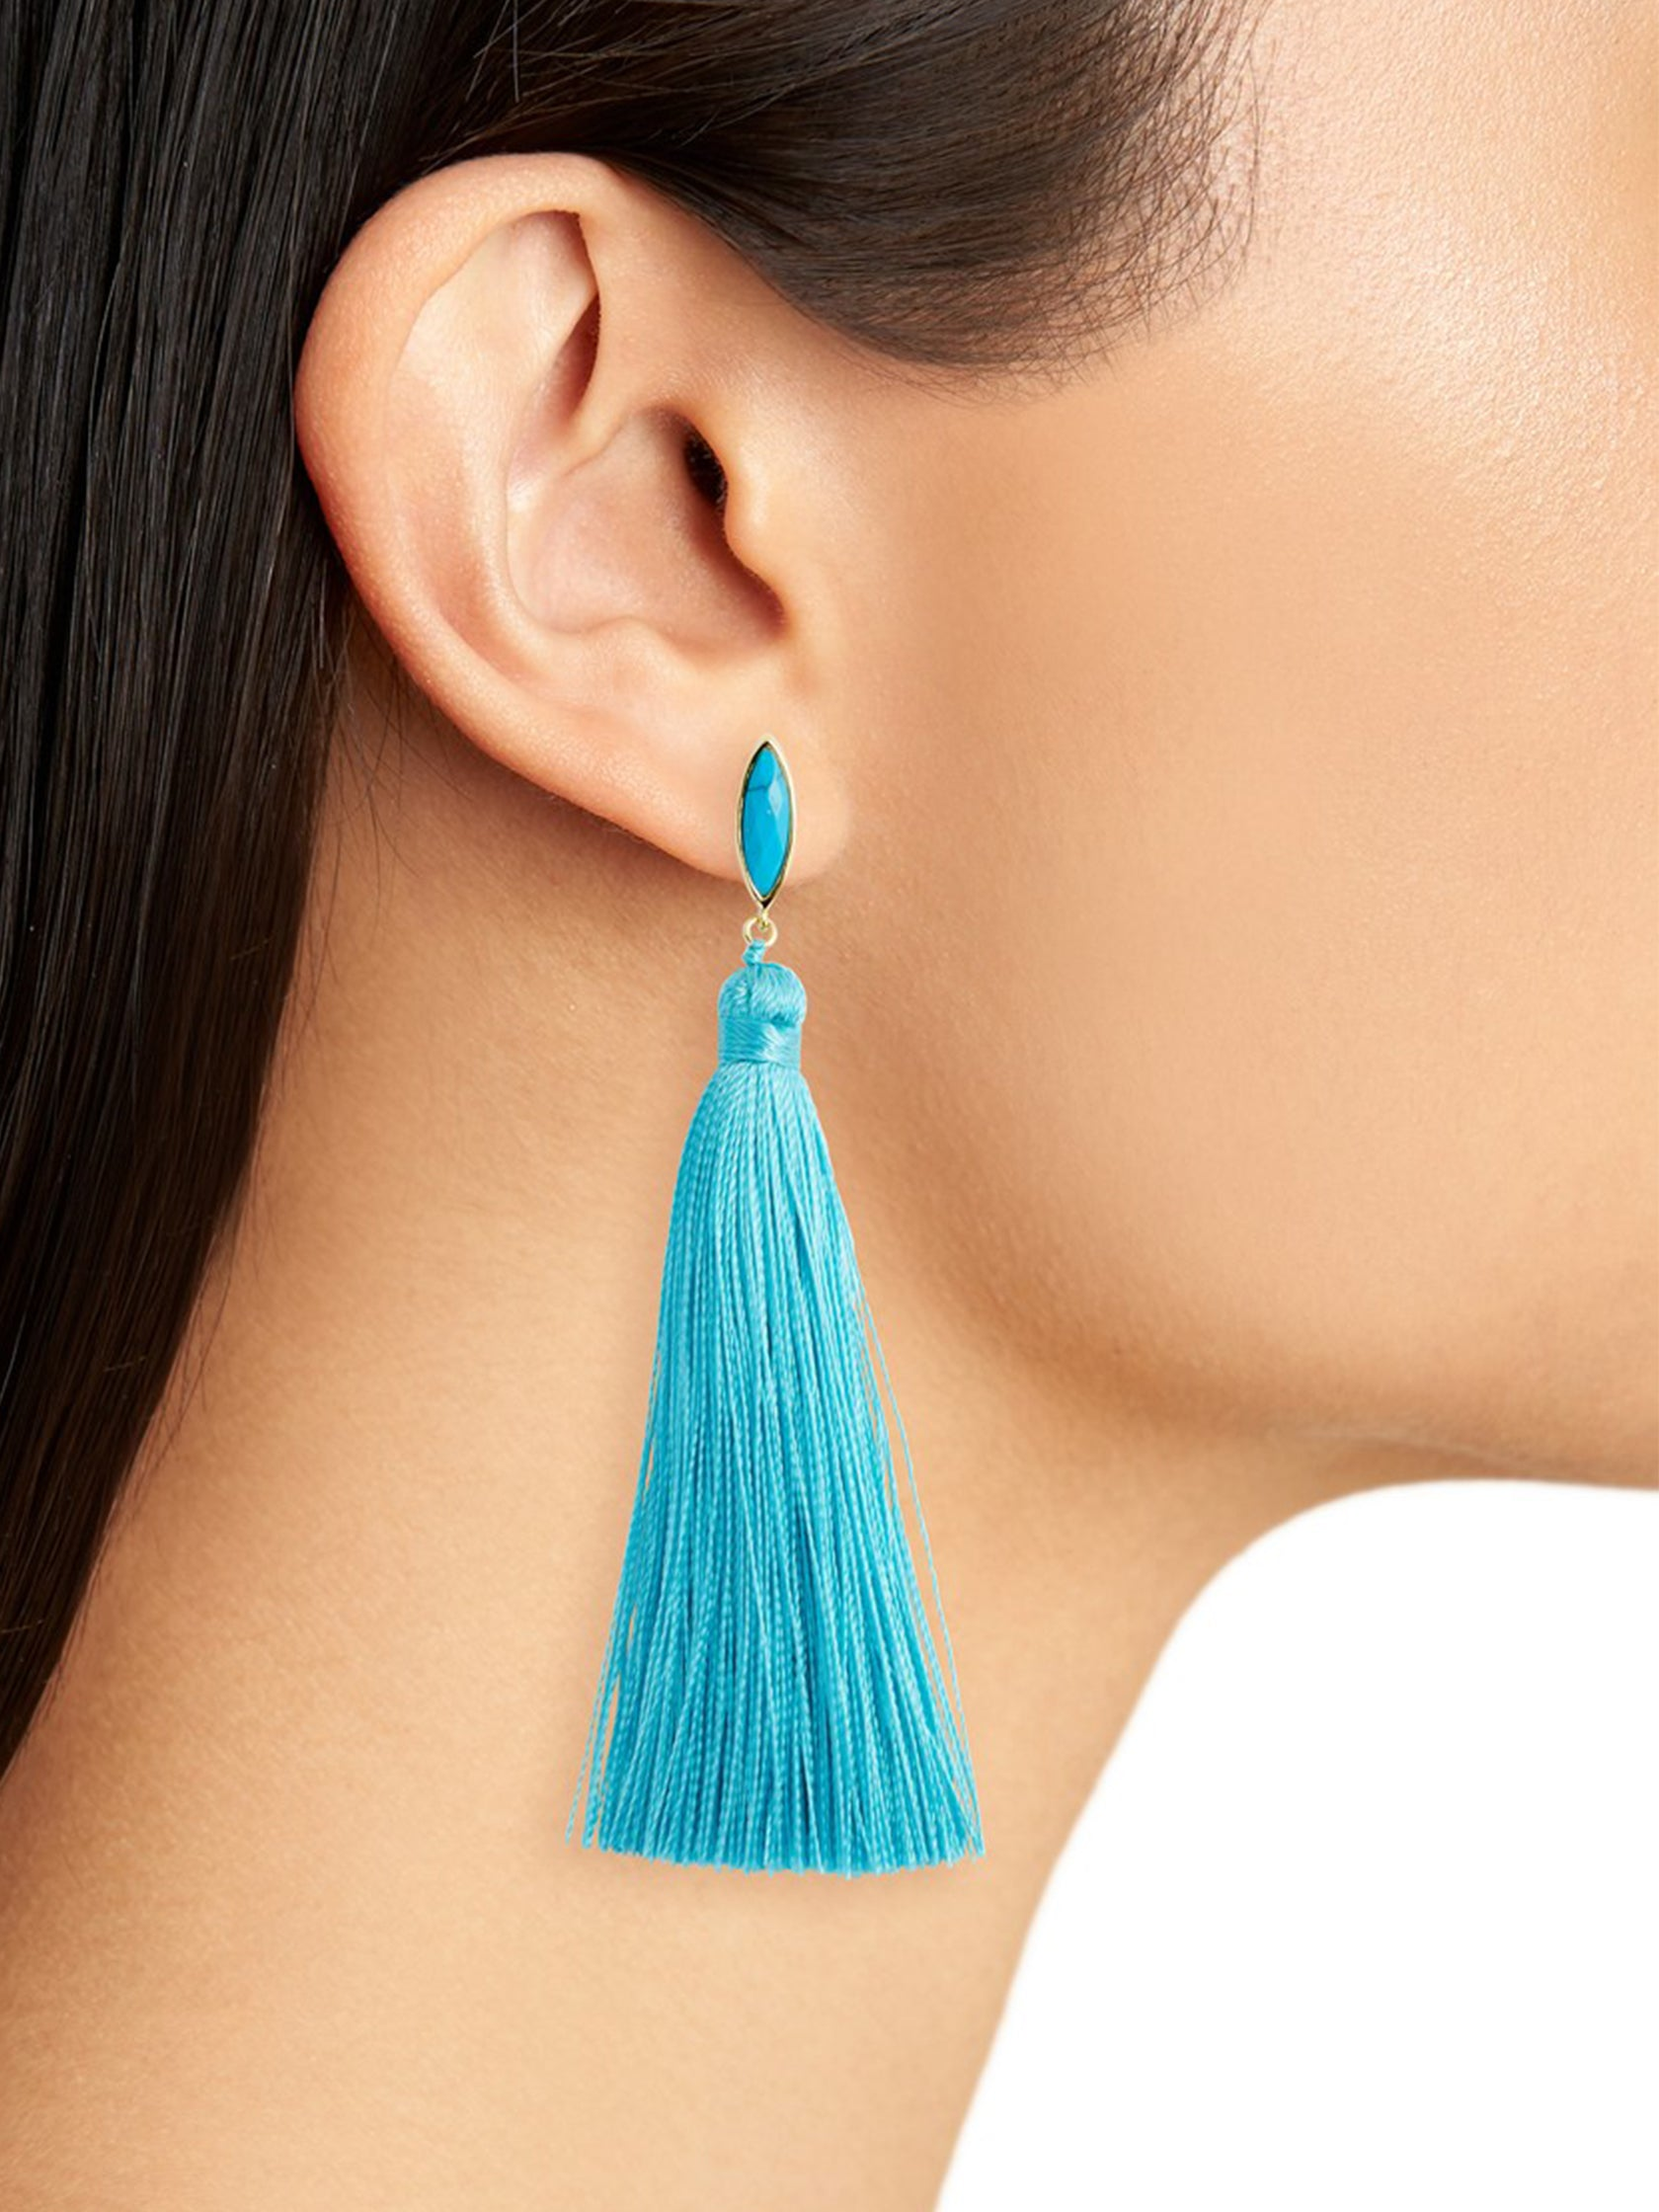 Women wearing a earrings rental from Gorjana called Palisades Tassel Earrings